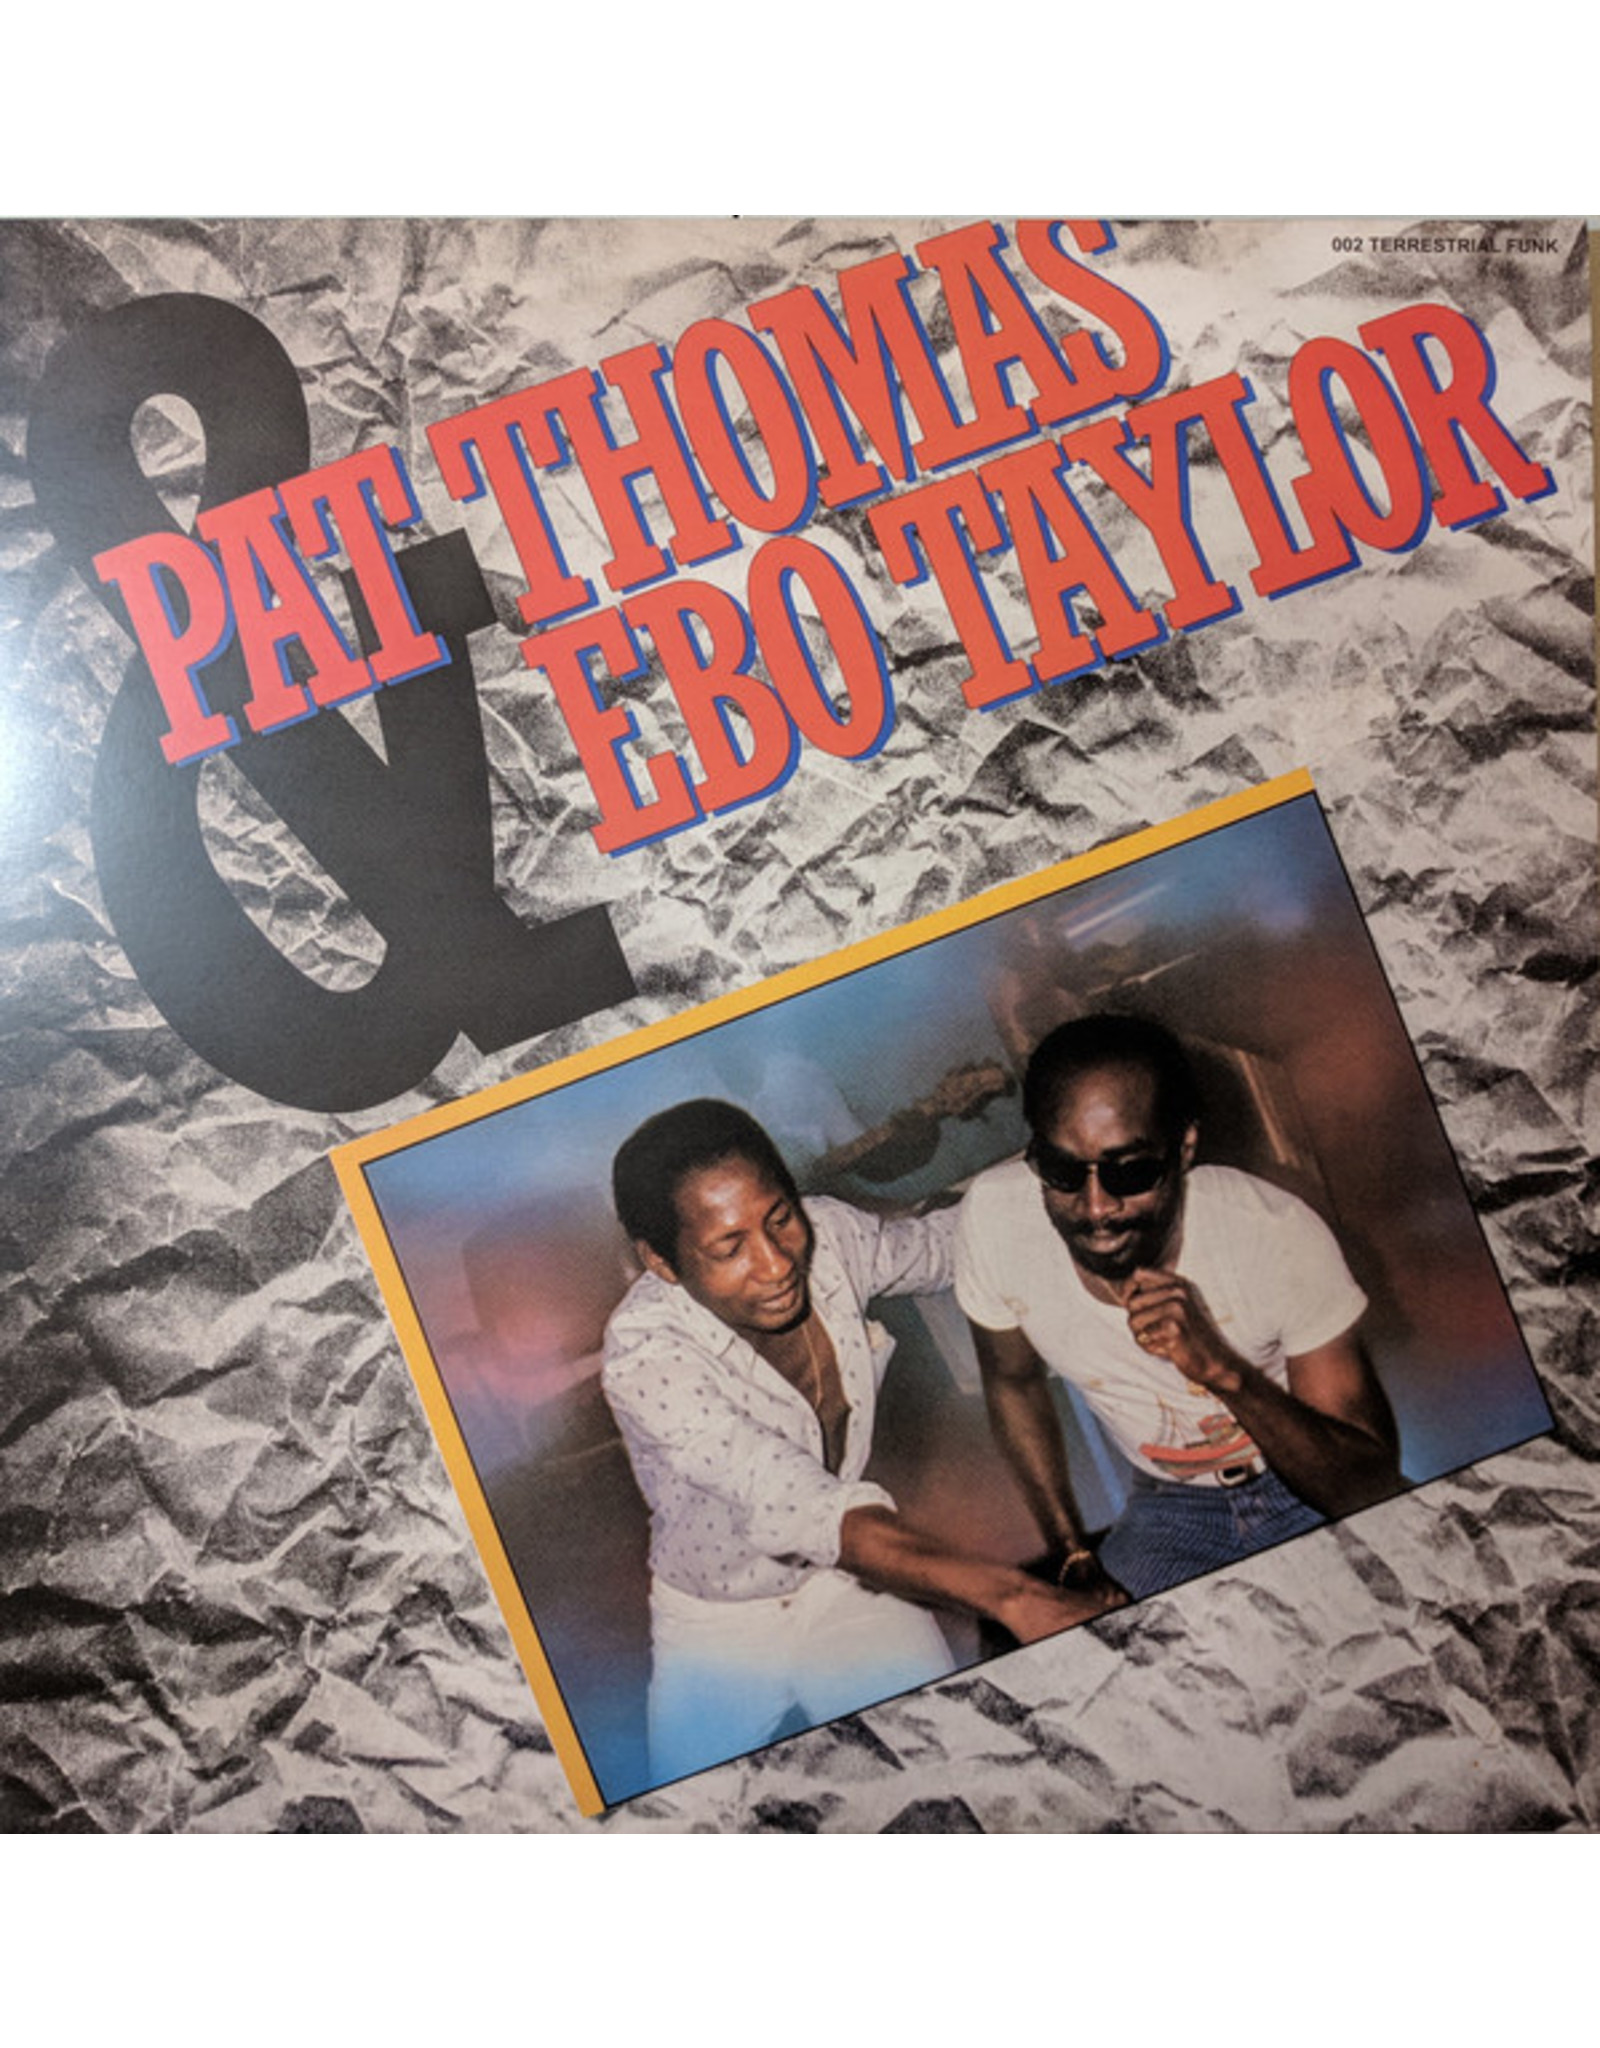 New Vinyl Pat Thomas & Ebo Taylor - S/T LP